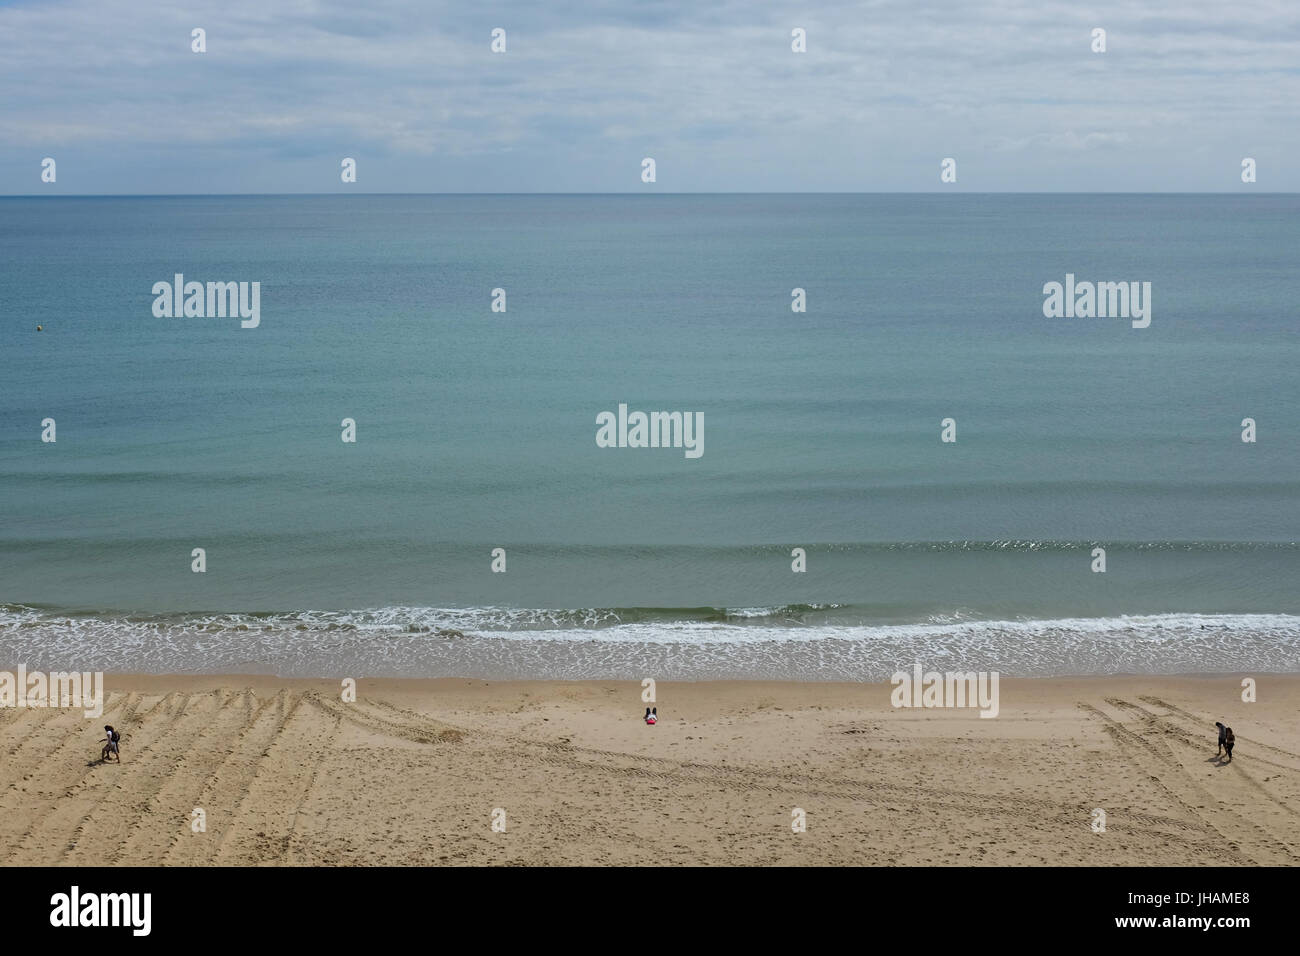 Bournemouth beach in England. Stock Photo